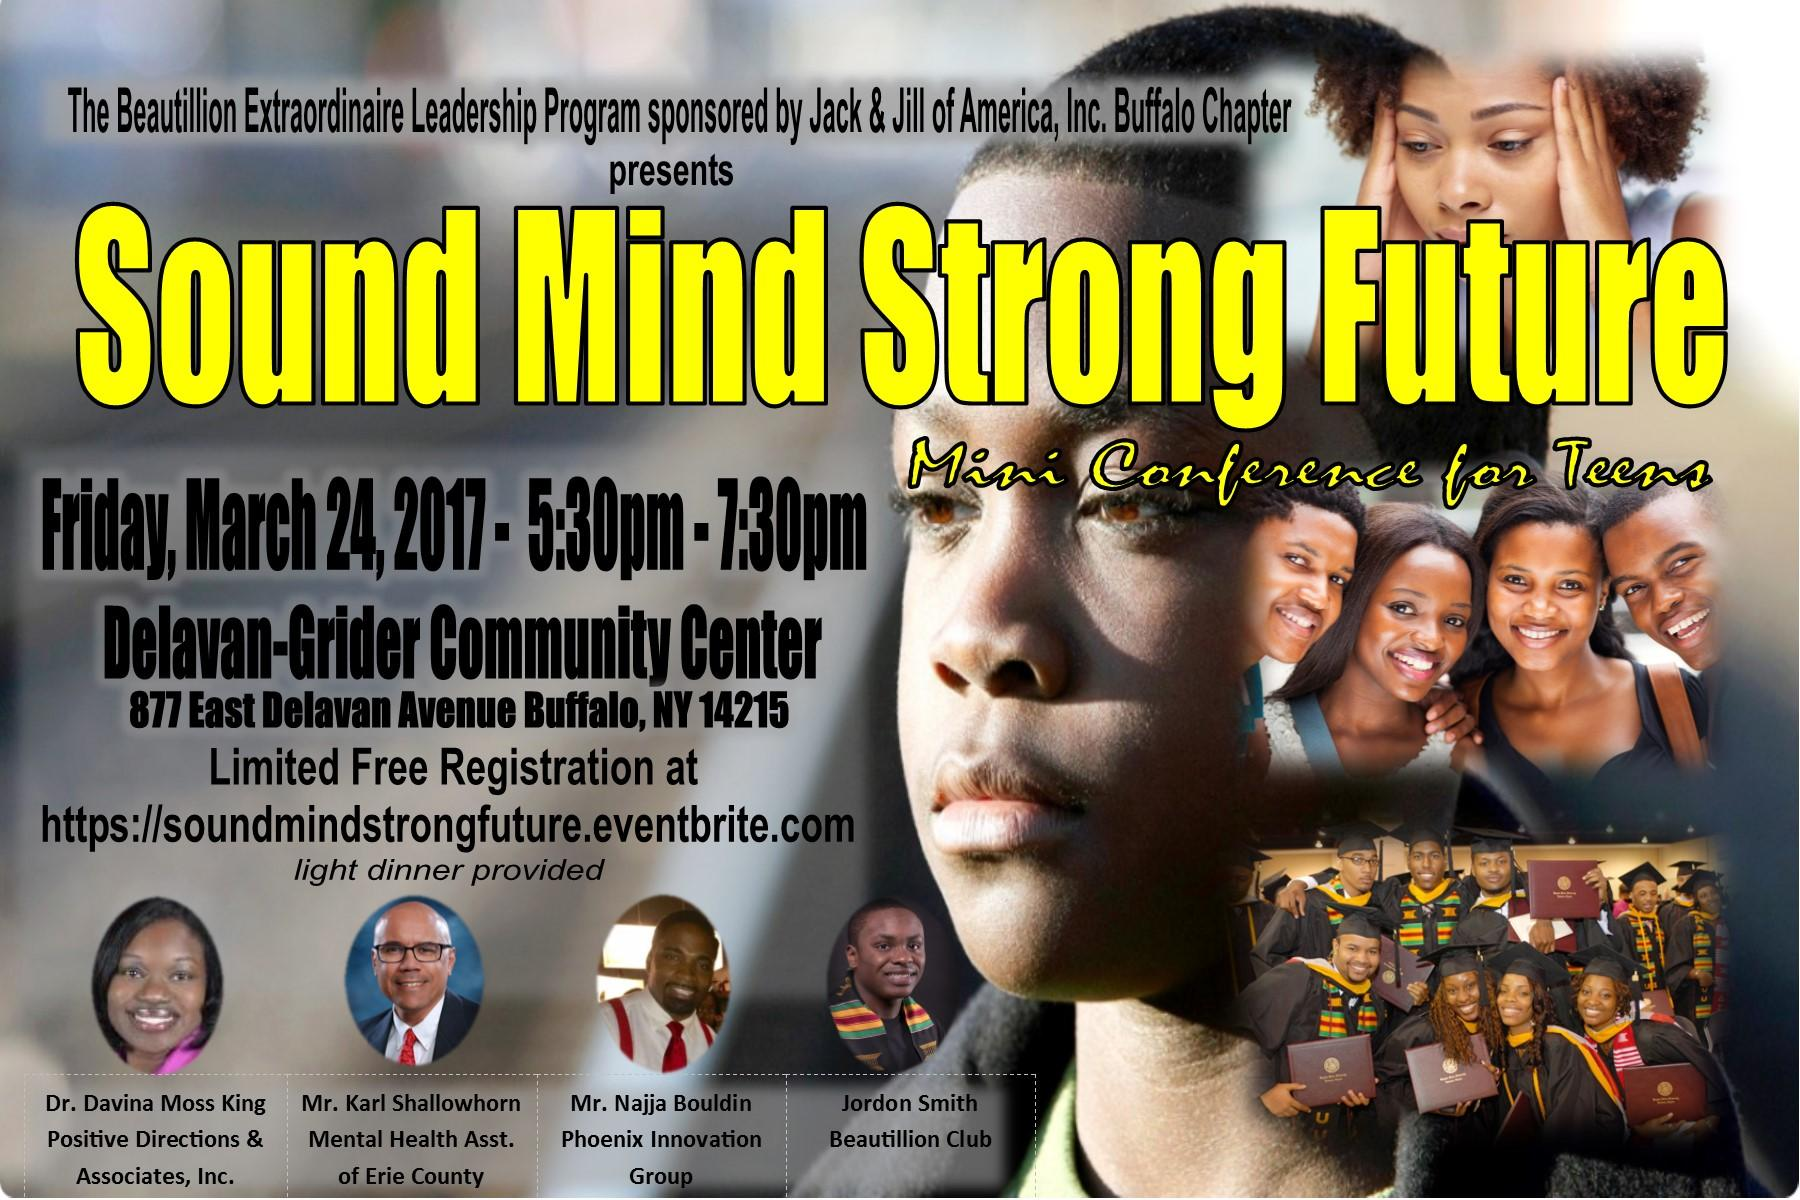 Sound Mind Strong Future Mini Conference for